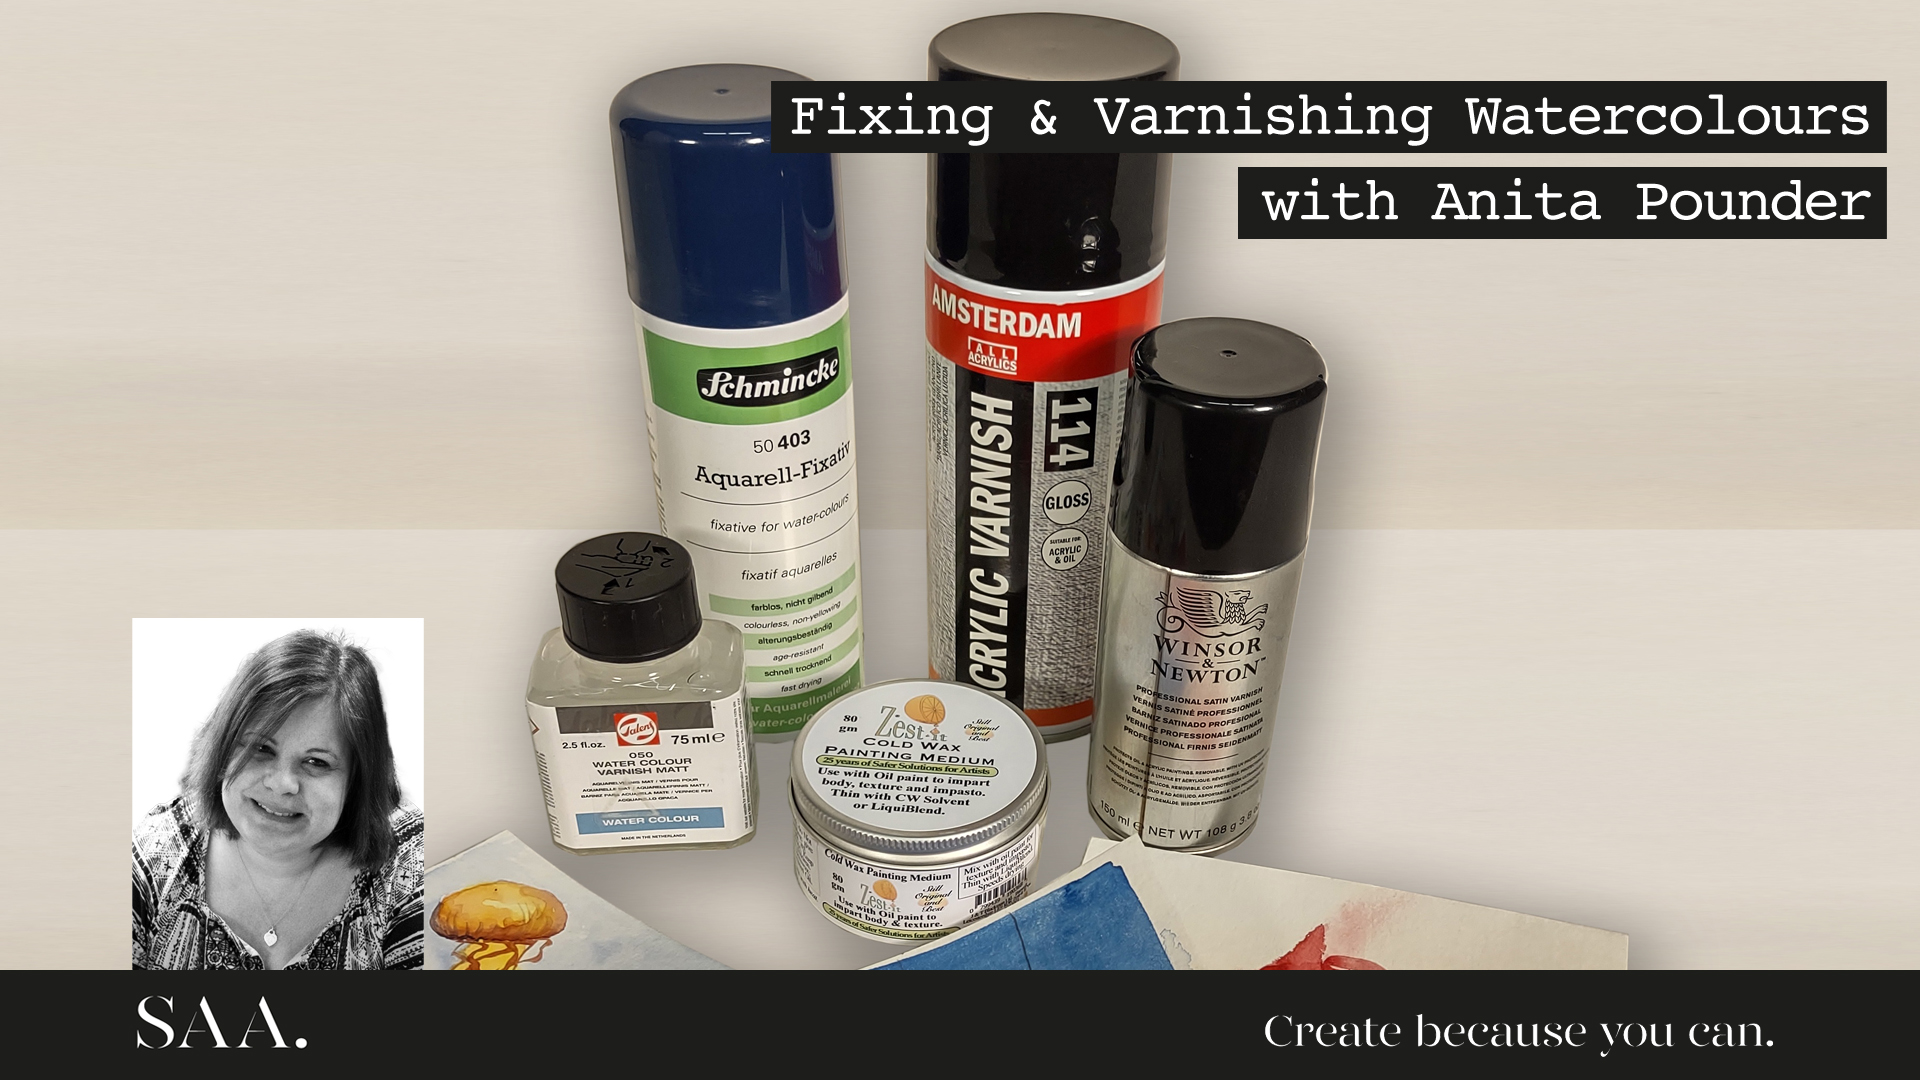 Live with Anita – Fixing and Varnishing Watercolours